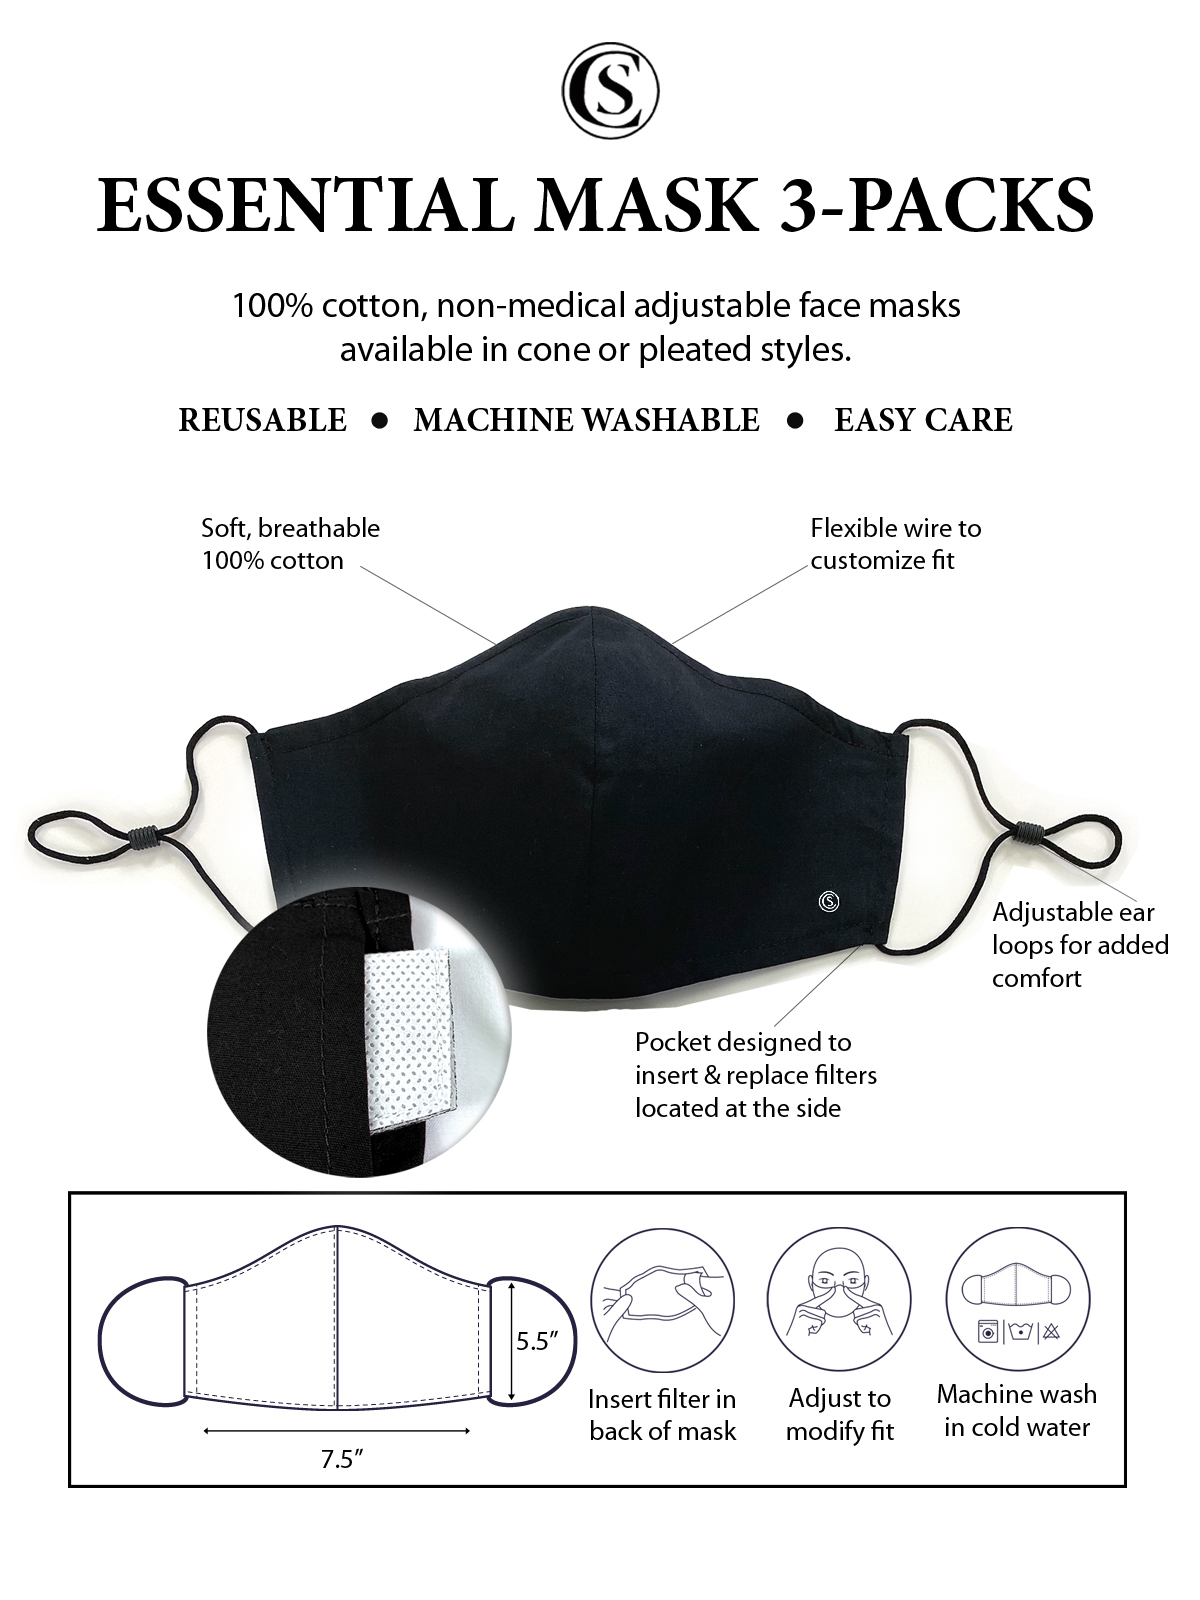 SOLID BLACK CONE MASK 3-PACK